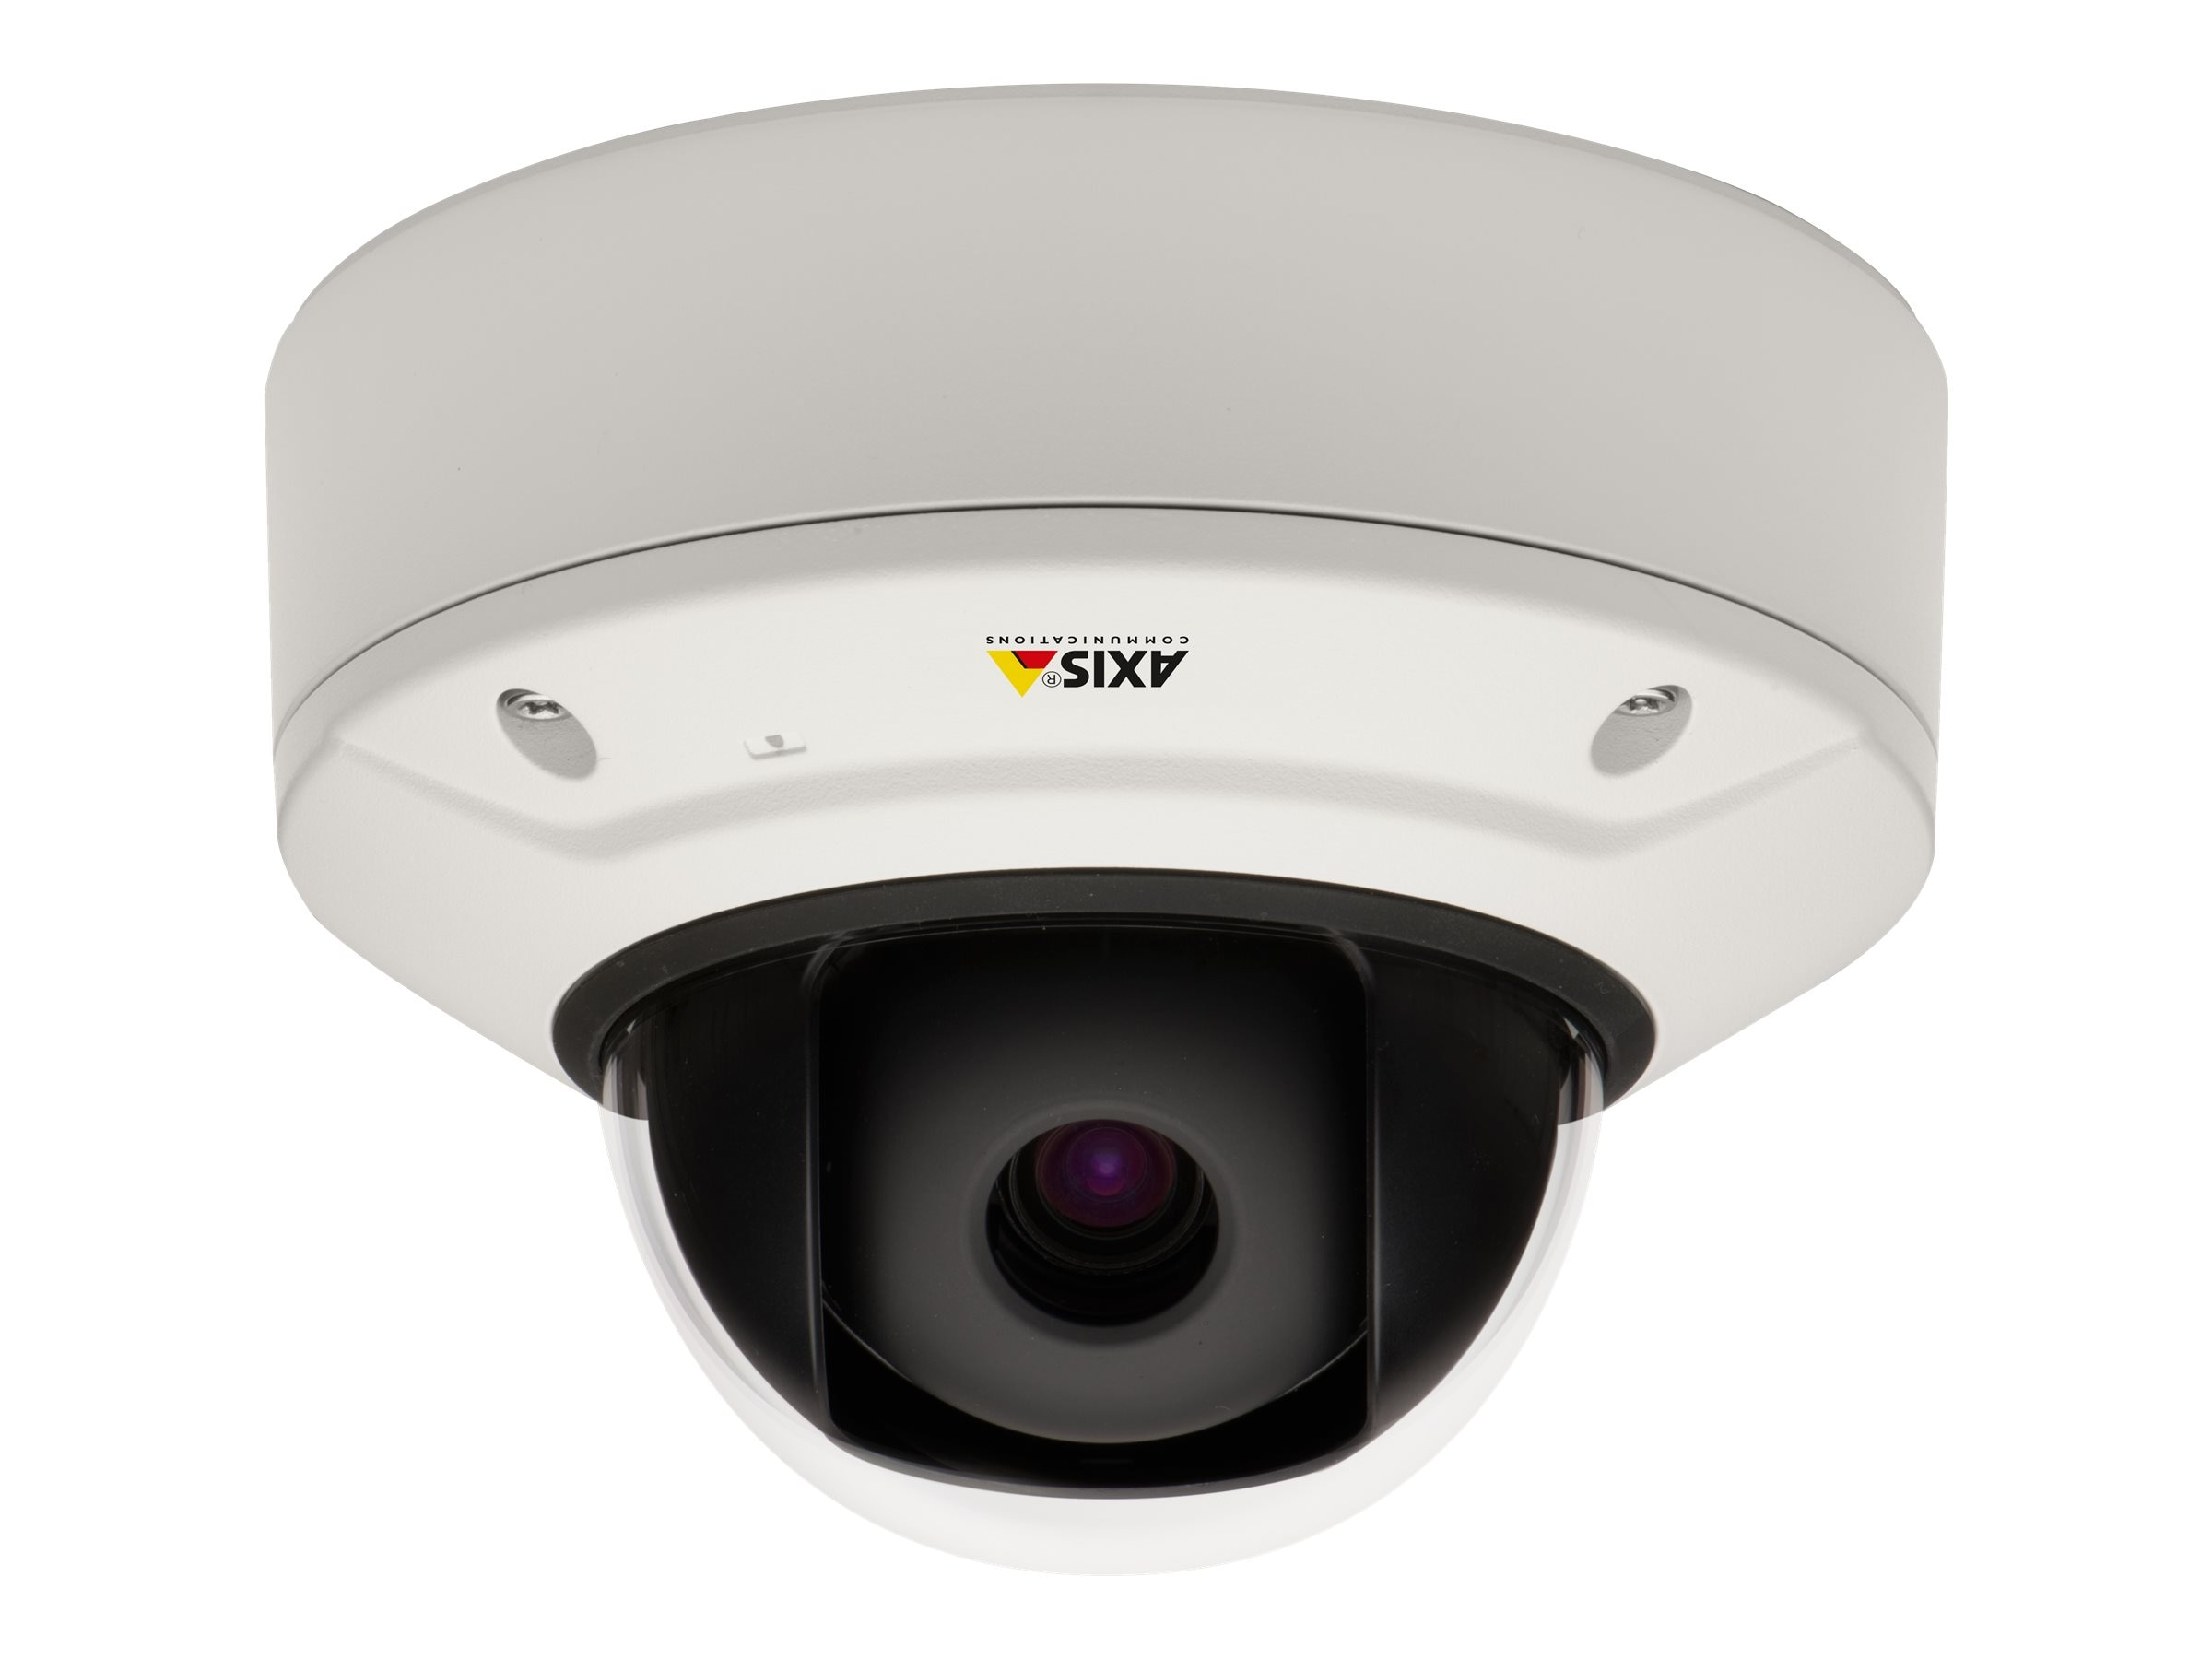 Axis Q3505-V Day Night Fixed Dome Network Camera with 9mm Lens, 0616-001, 17753851, Cameras - Security